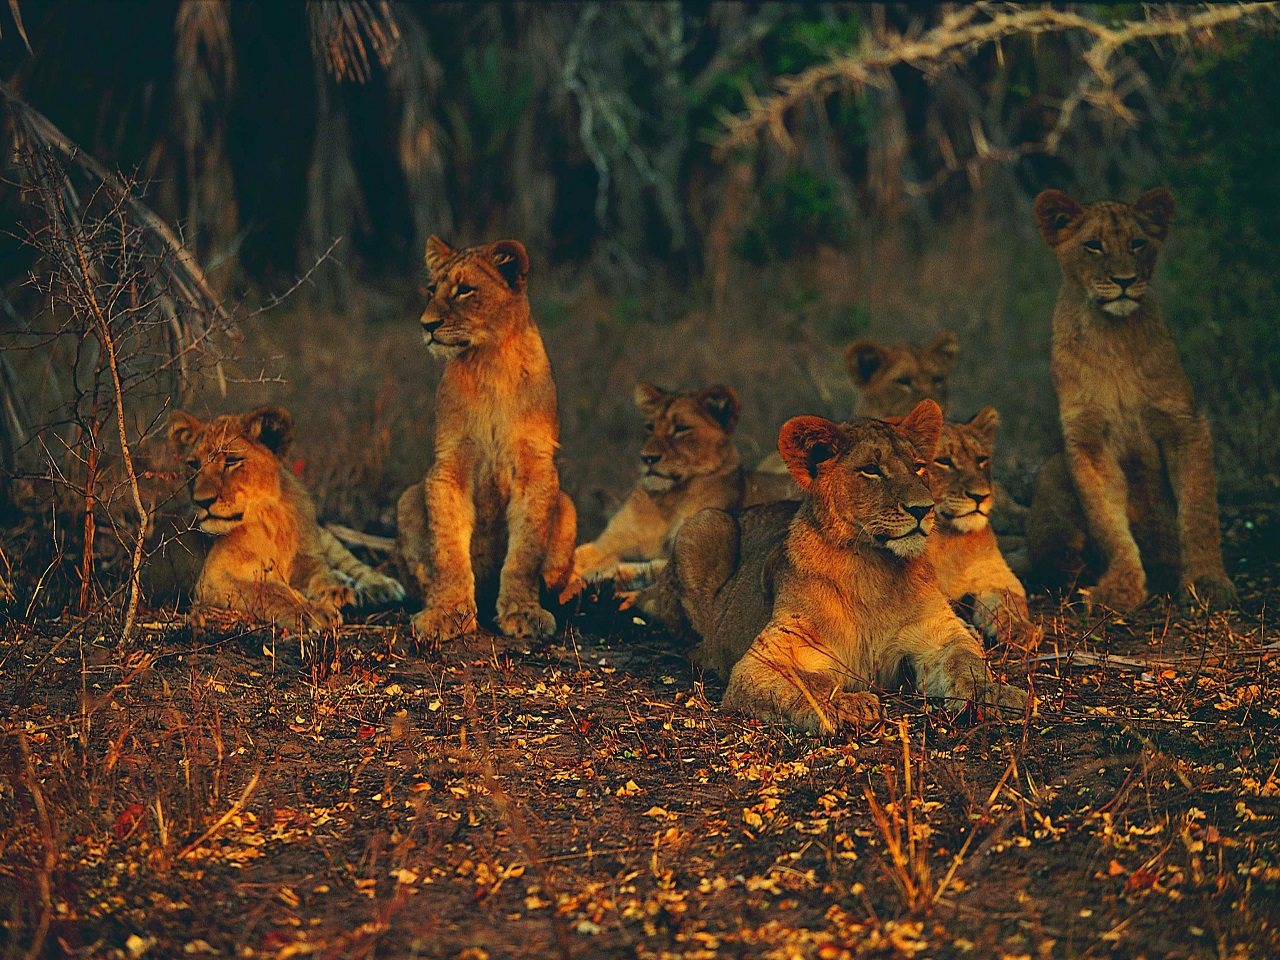 Pride of lions in Hwange National Park